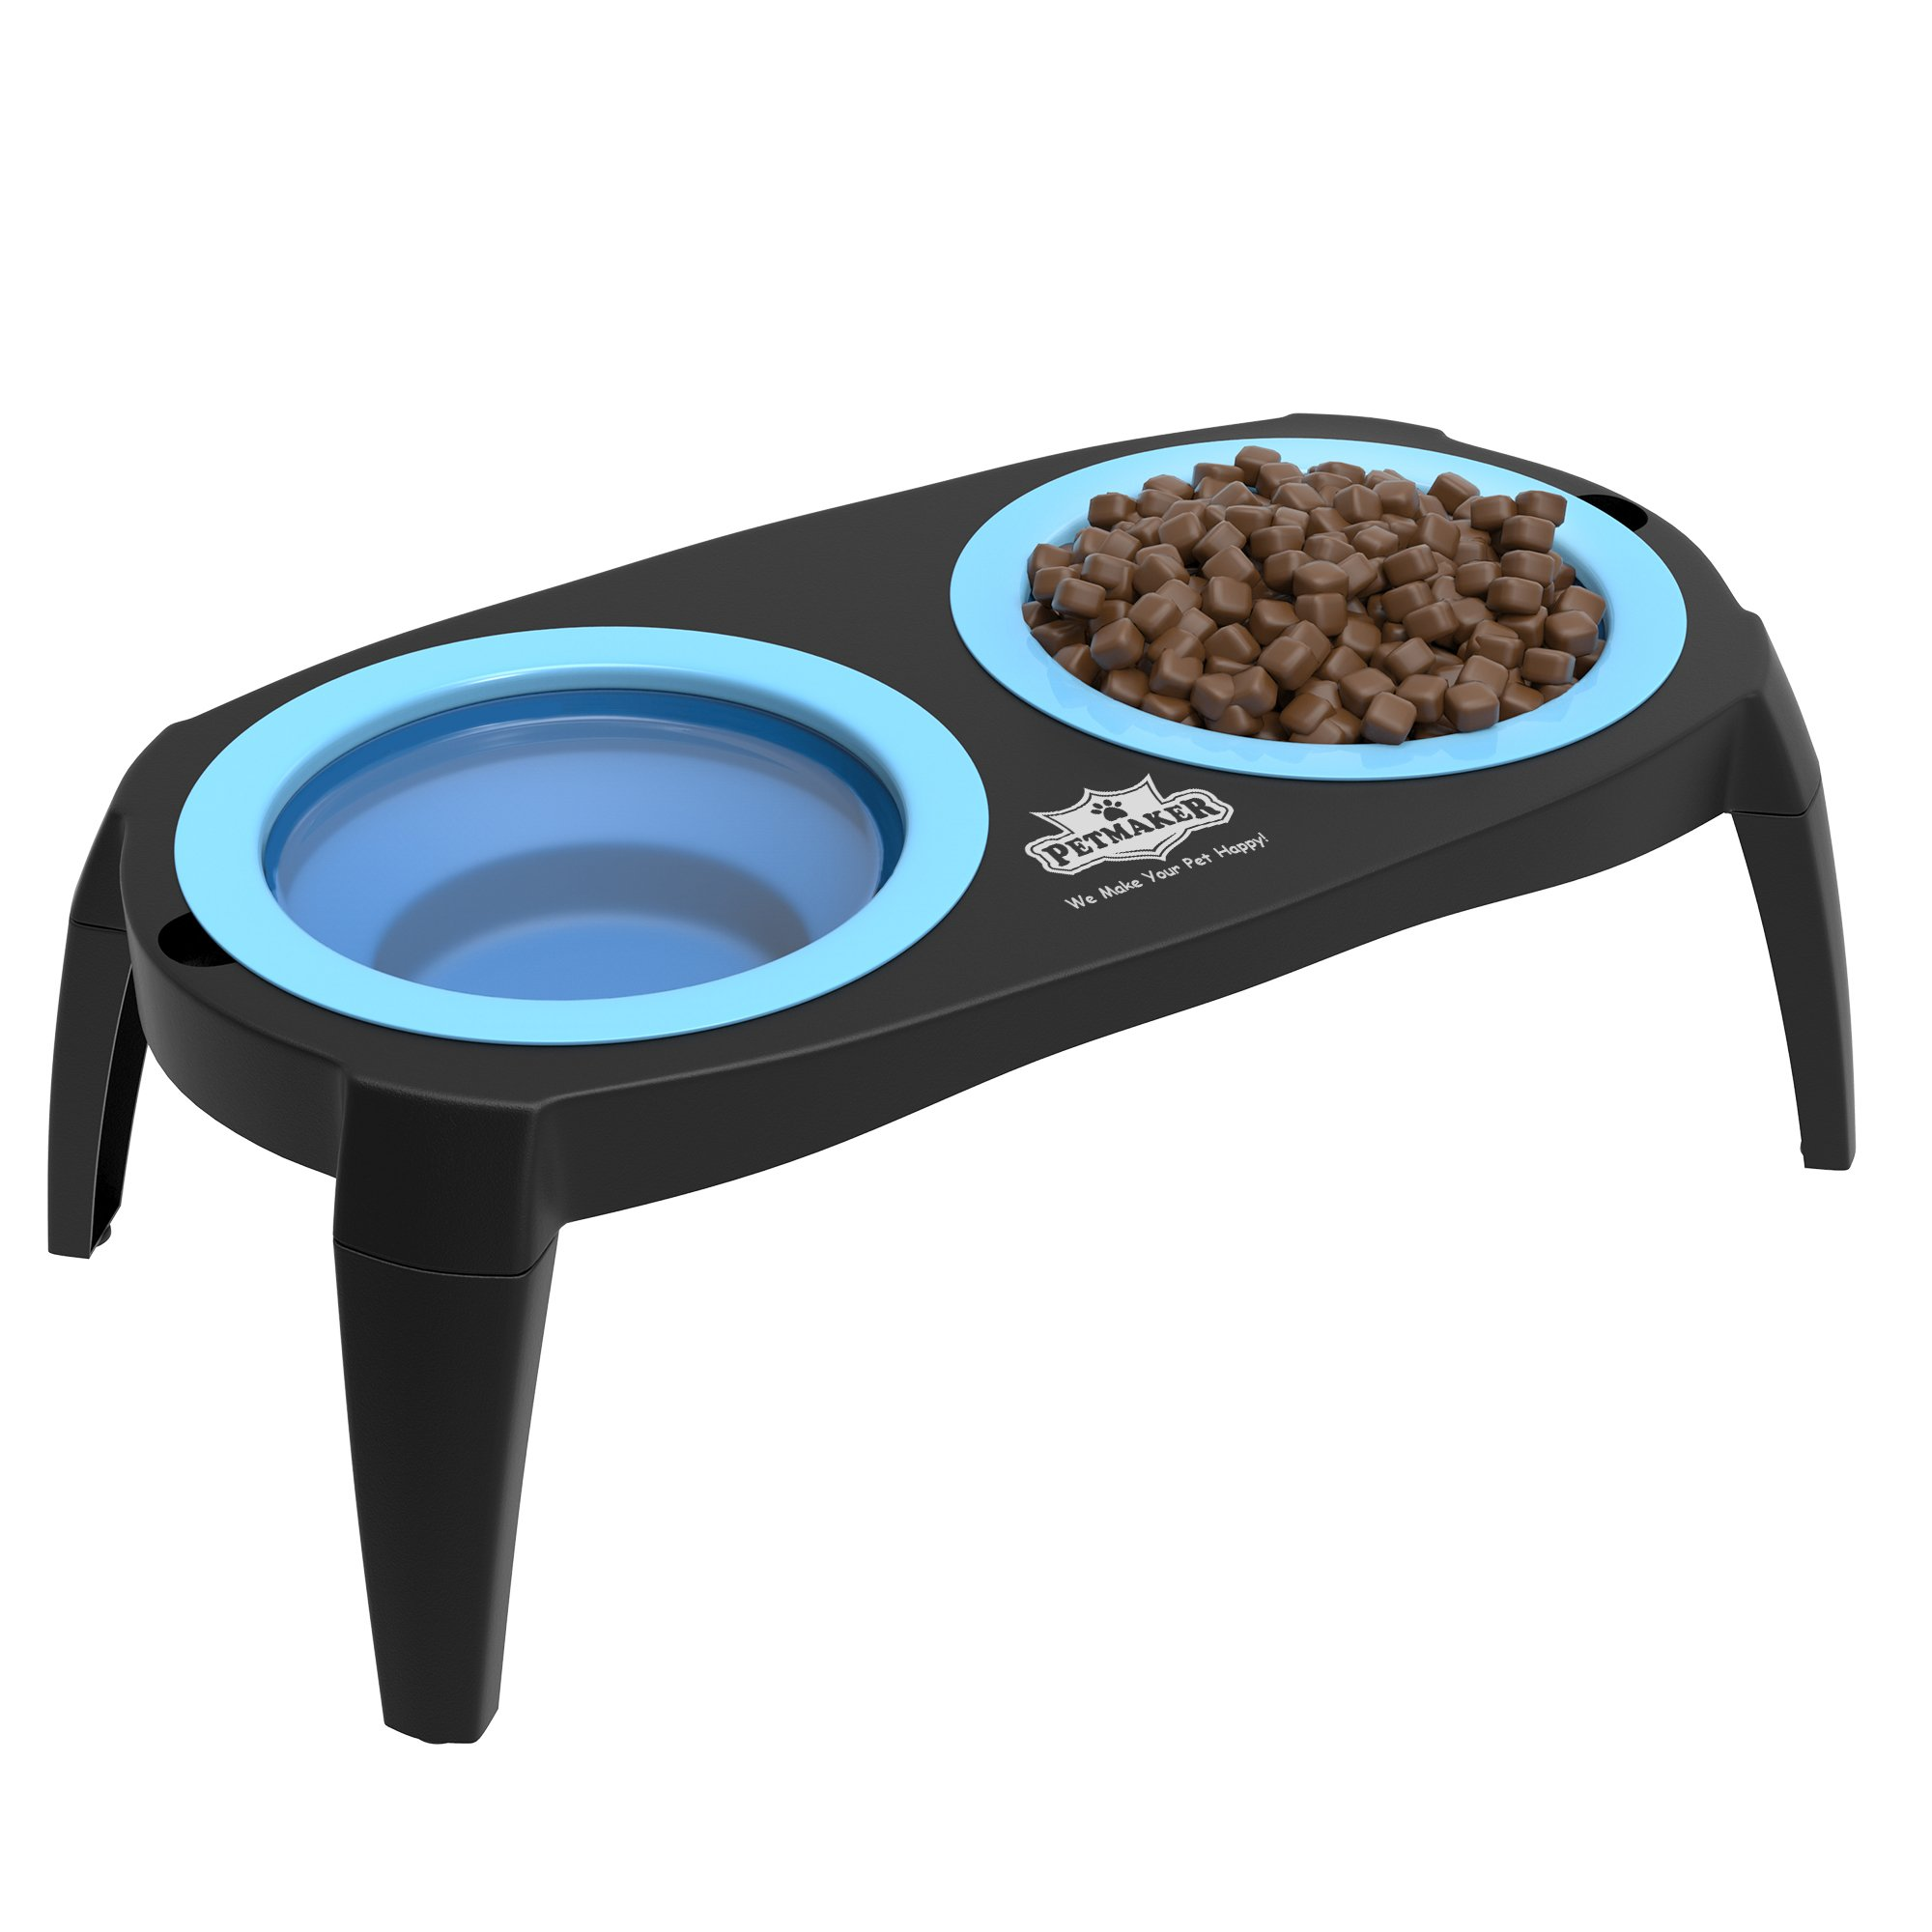 PETMAKER 80-PET6095 Elevated Pet Bowls with Non Slip Stand, 16 oz